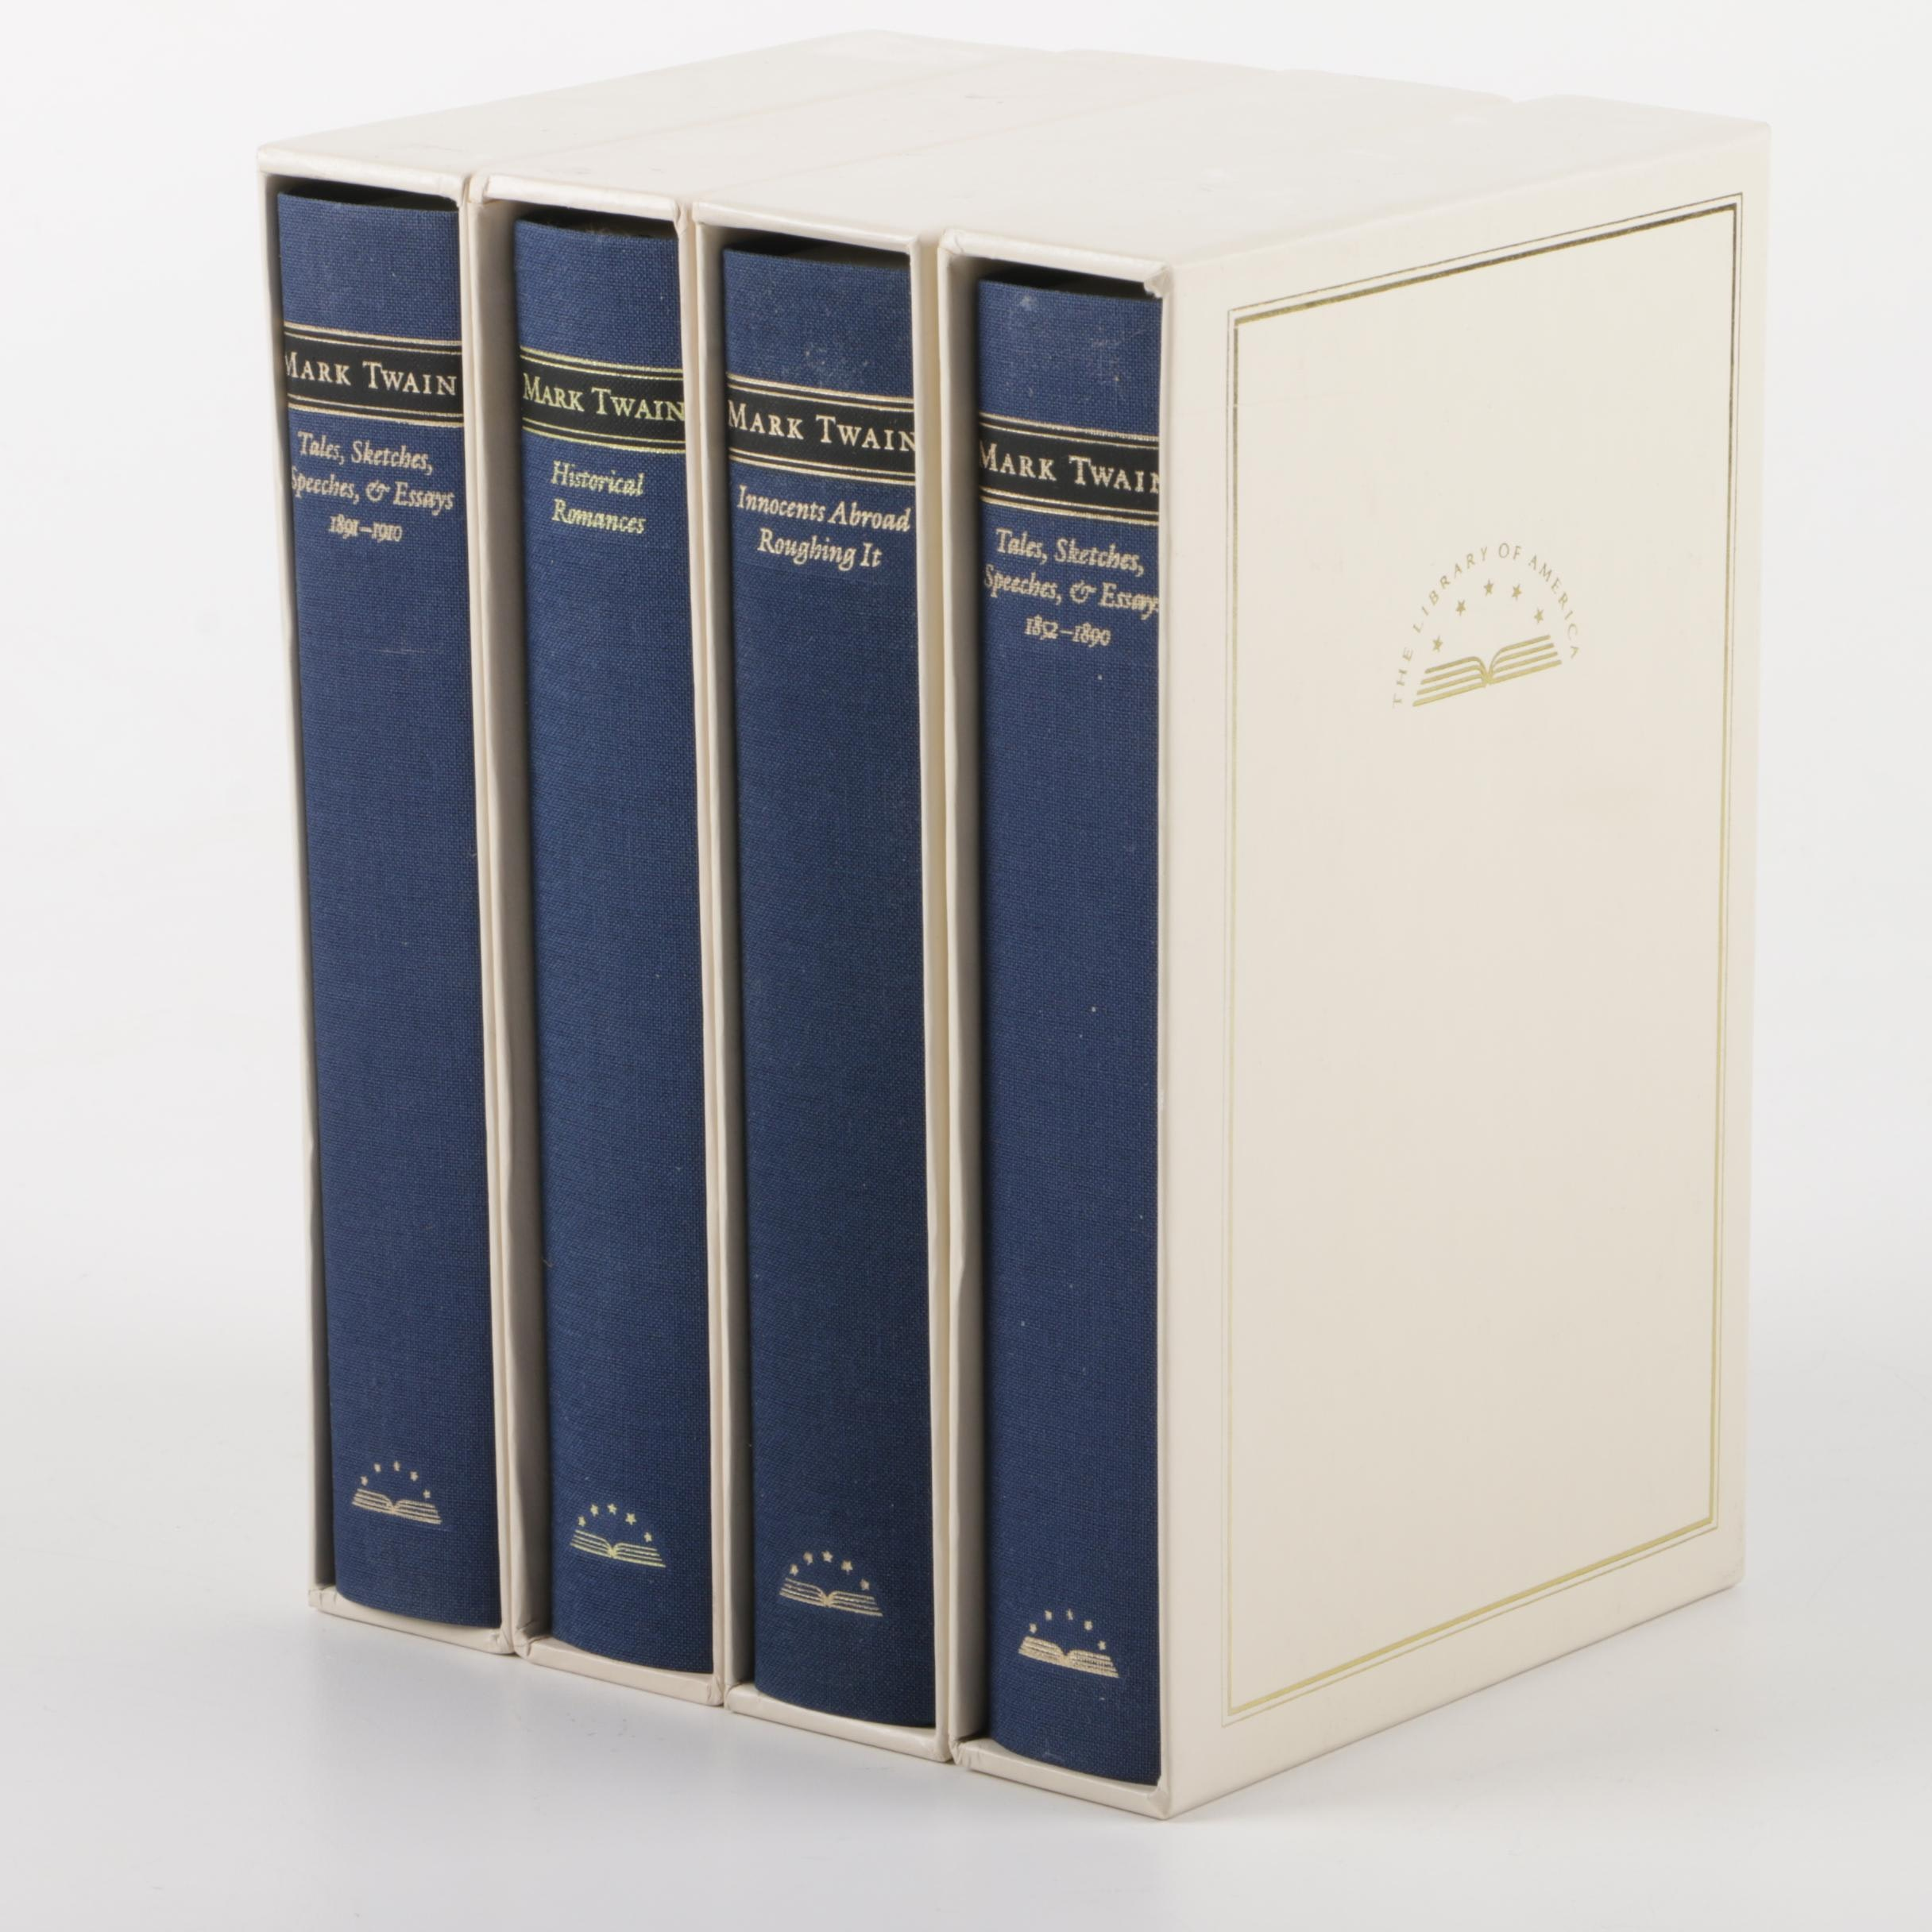 Library of America Edition Novels by Mark Twain